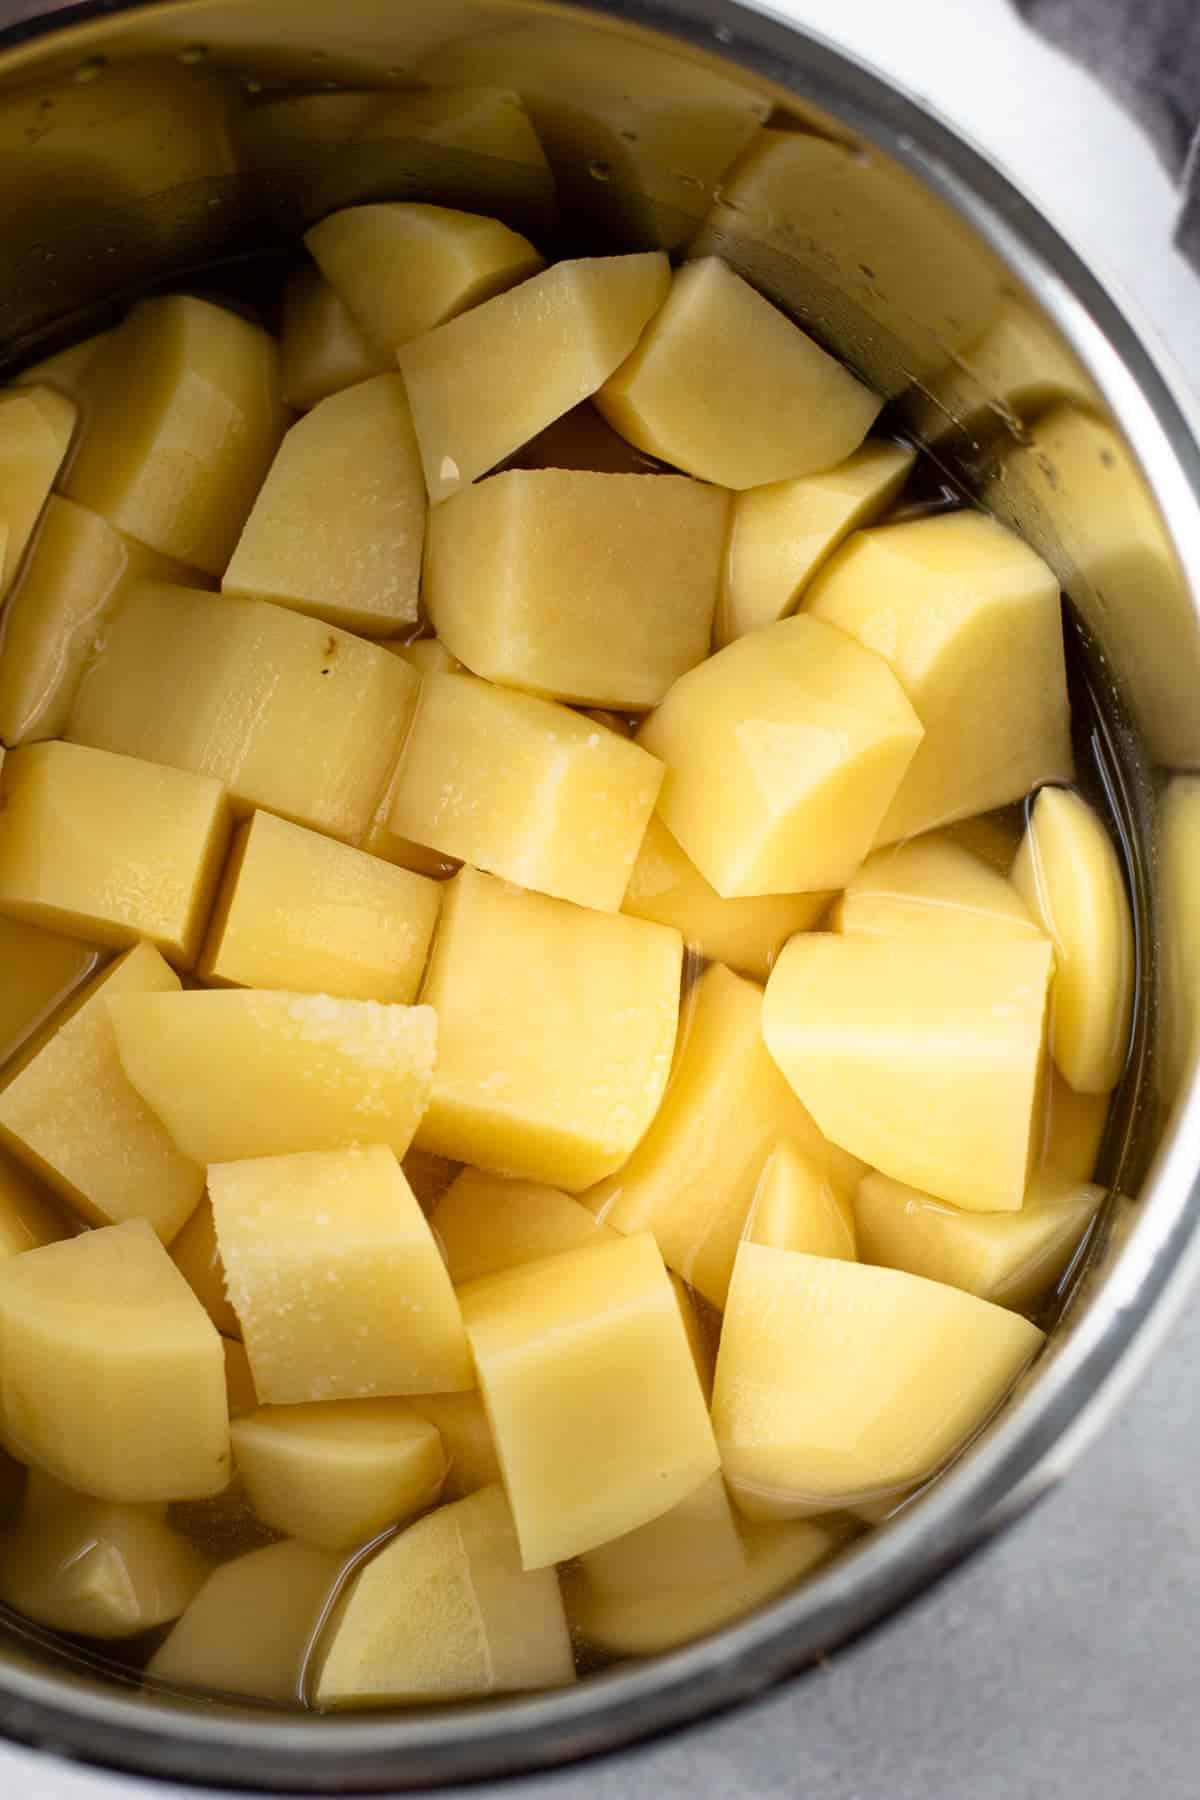 Cubed and raw potatoes in an instant pot.